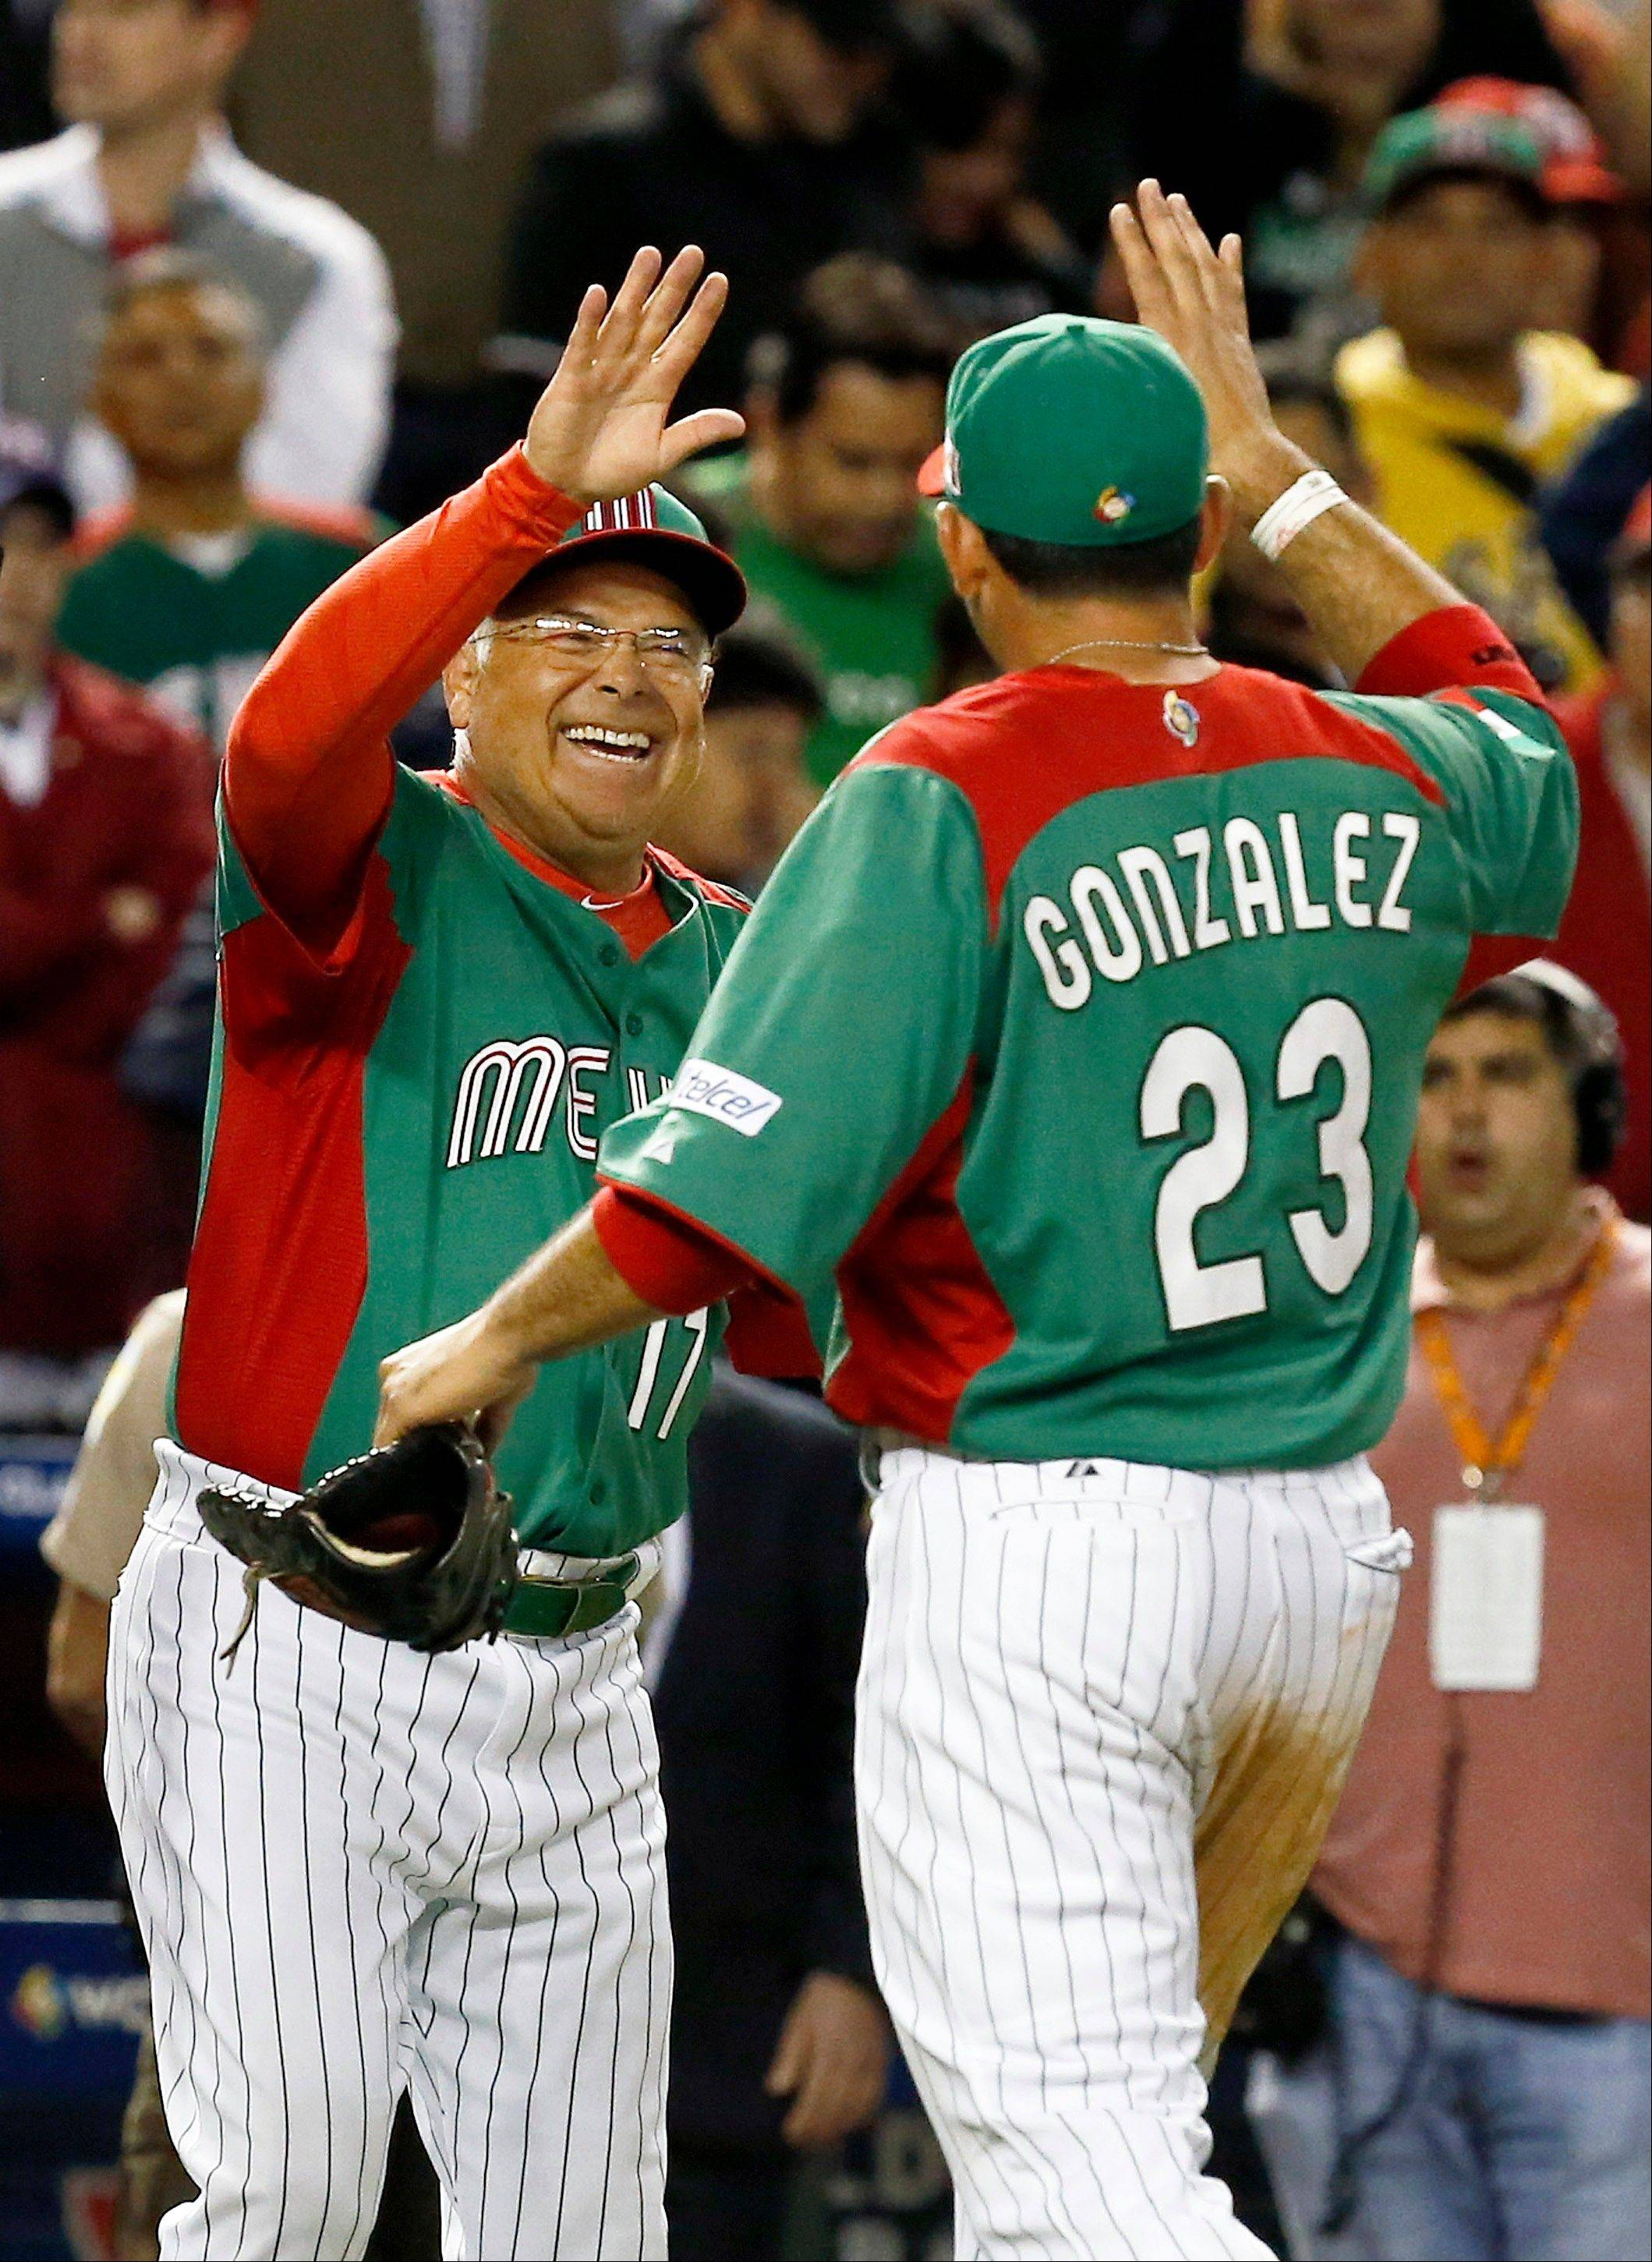 Rick Renteria, left, smiles as he celebrates a win by Team Mexico over the United States with Adrian Gonzalez (23) in the World Baseball Classic. Renteria is now the manager of the Cubs and expects his team to compete right away.